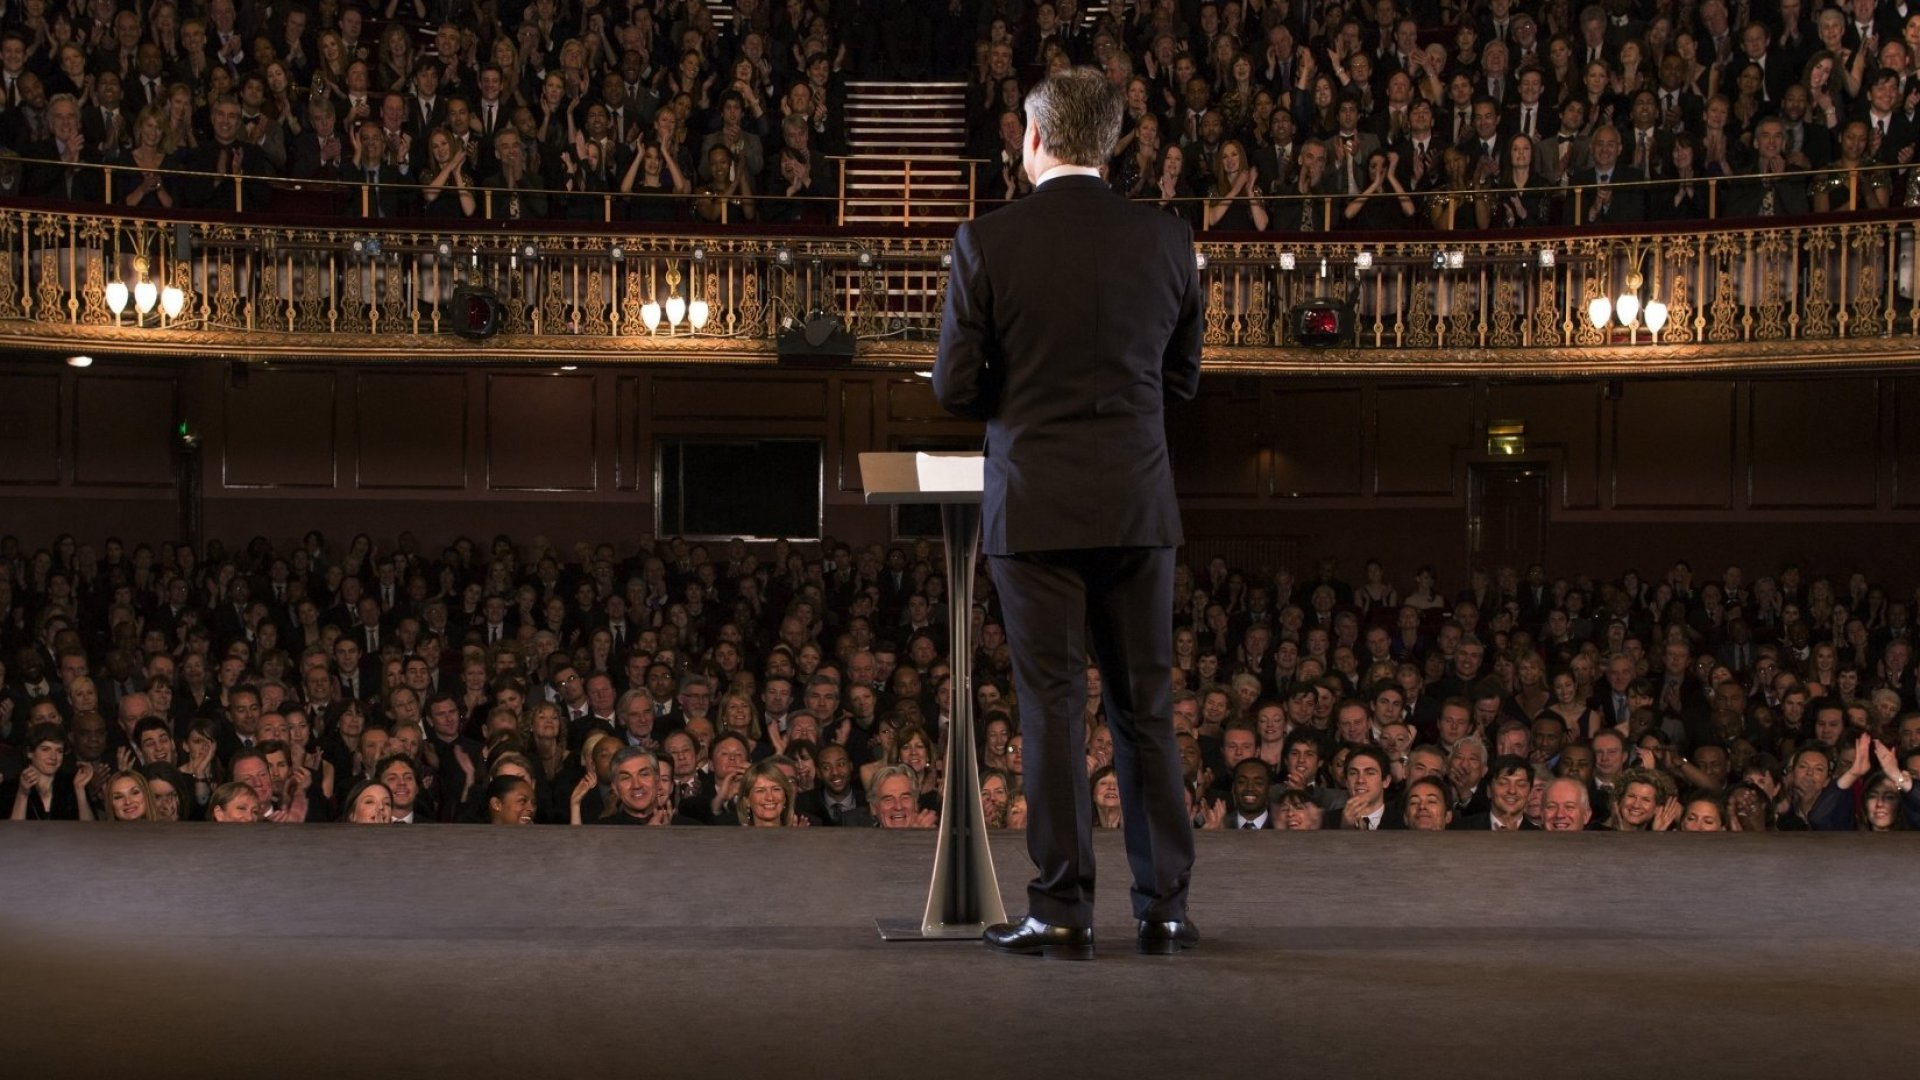 3 Big Secrets Public Speaking Pros Know (That Most Don't)